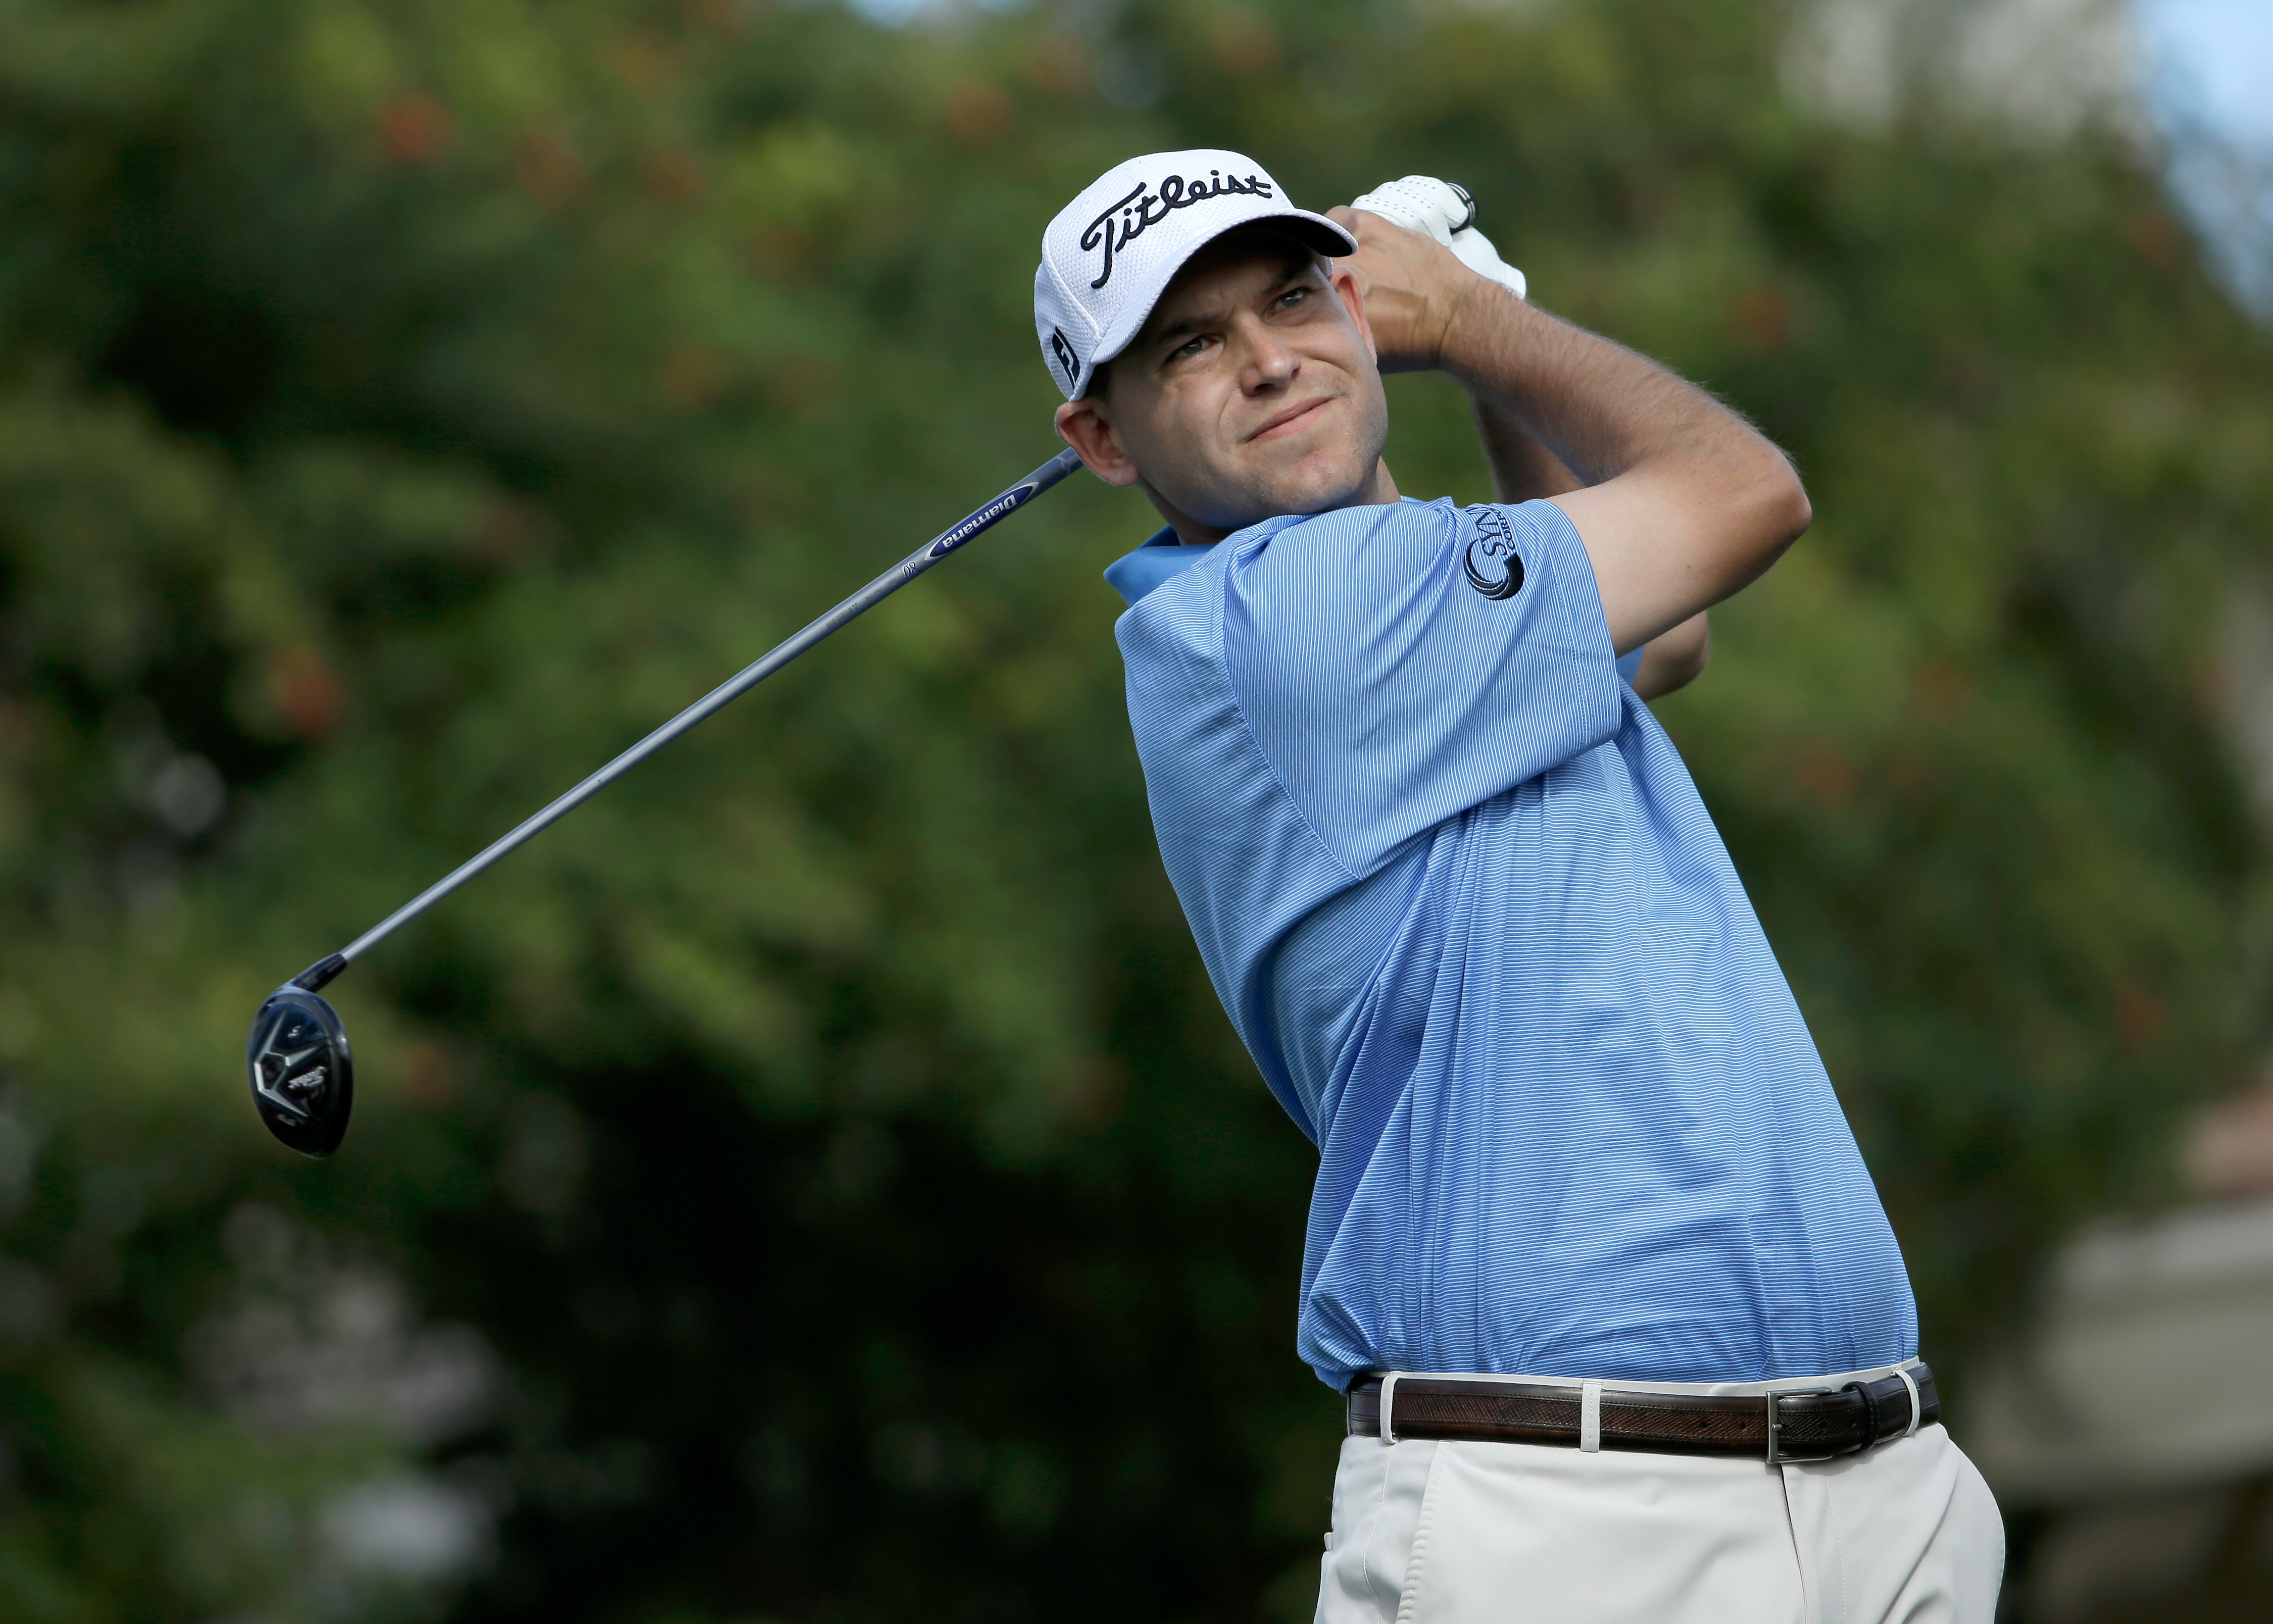 Bill Haas tees off on the eighth hole during the final round of the Humana Challenge.